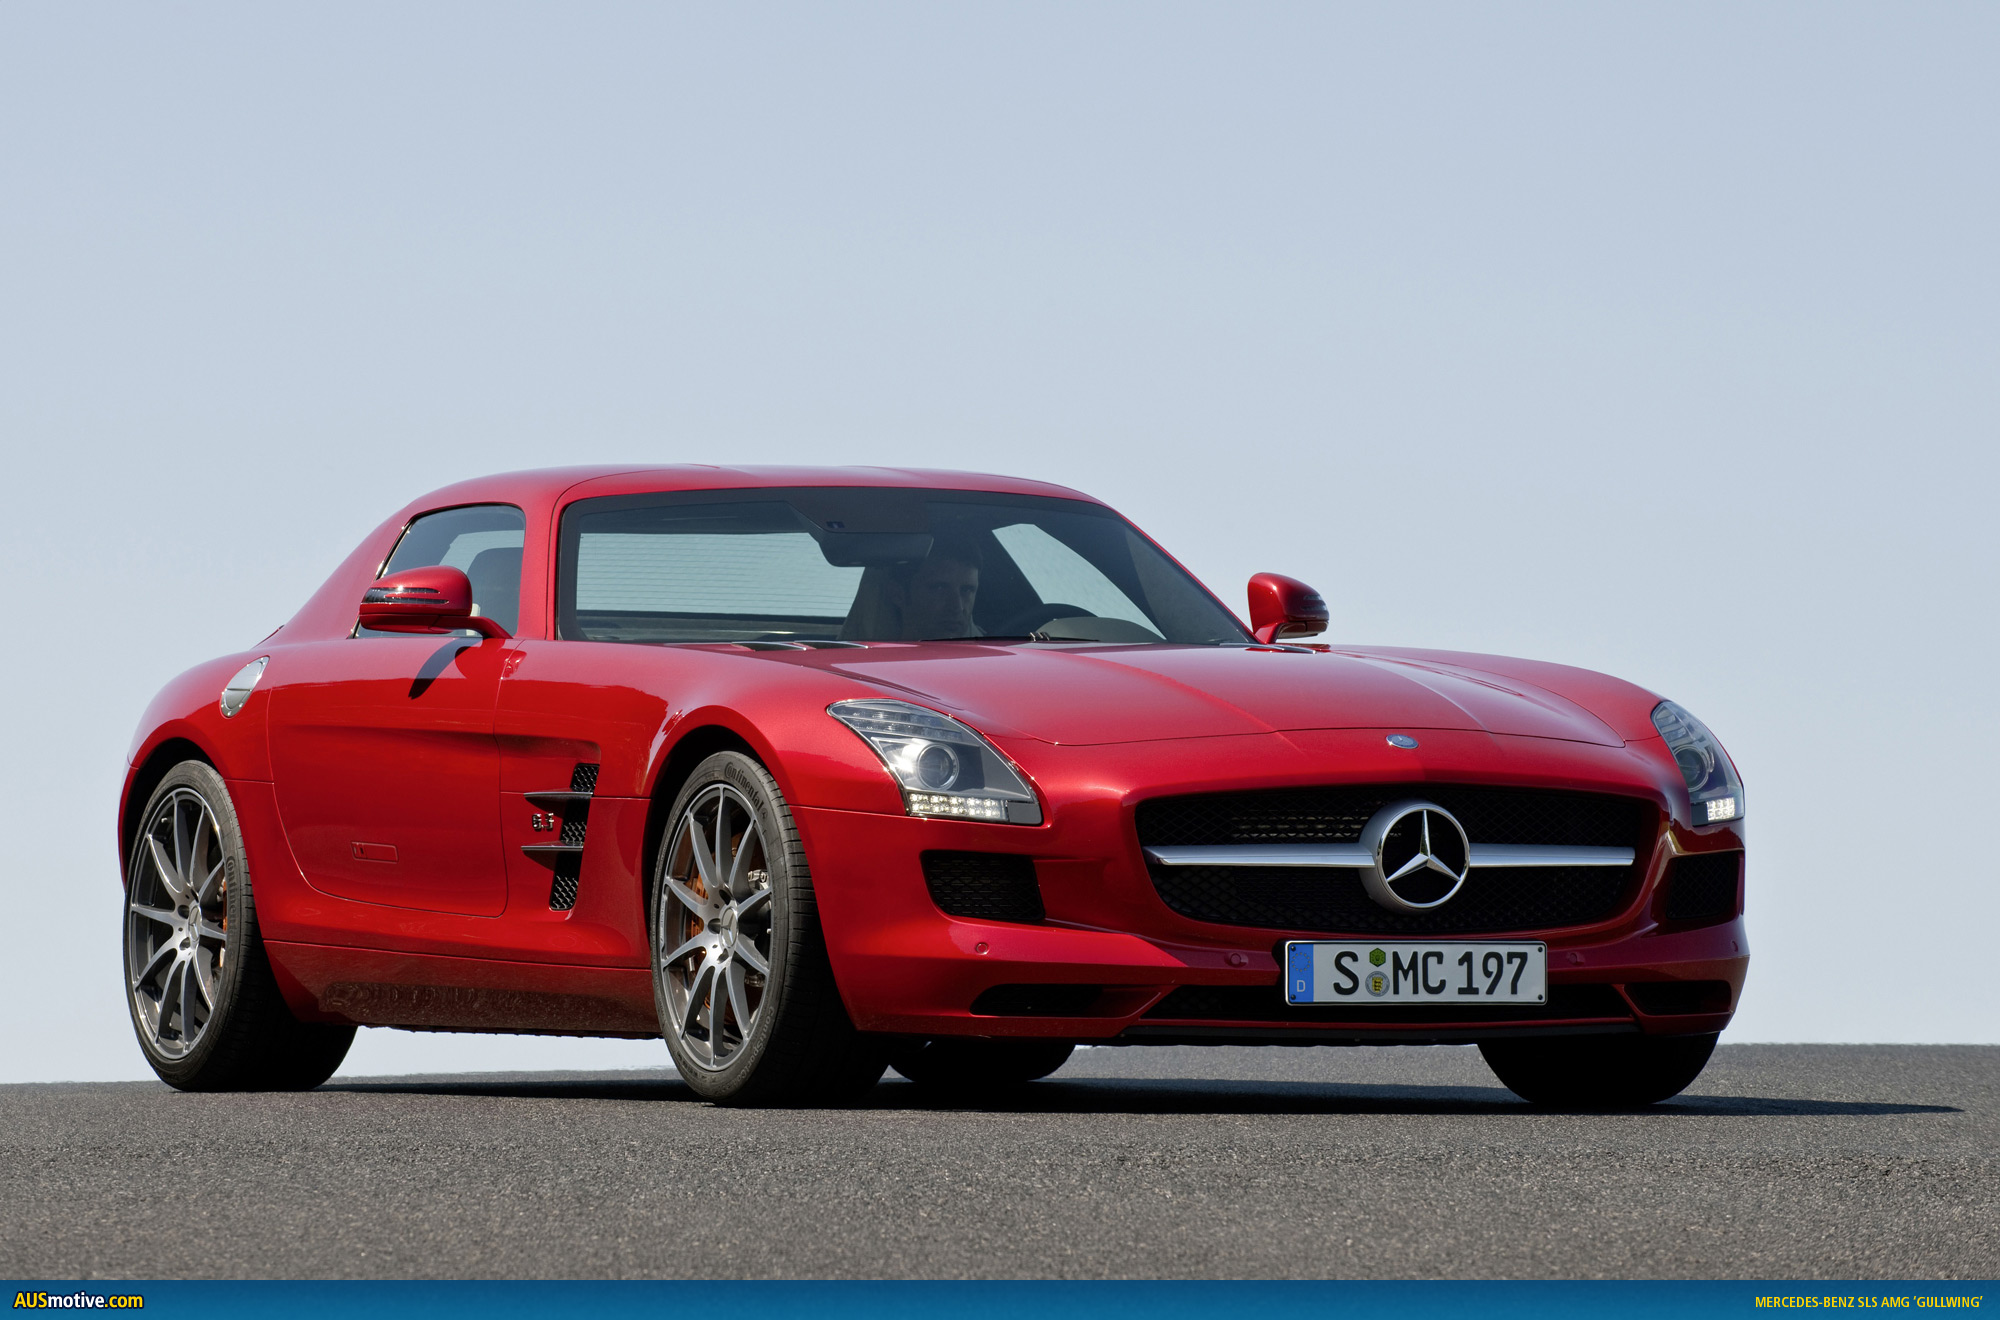 Mercedes - Benz Sls Amg Ausmotive 2010 Mercedes Benz Sls Amg Photo Gallery